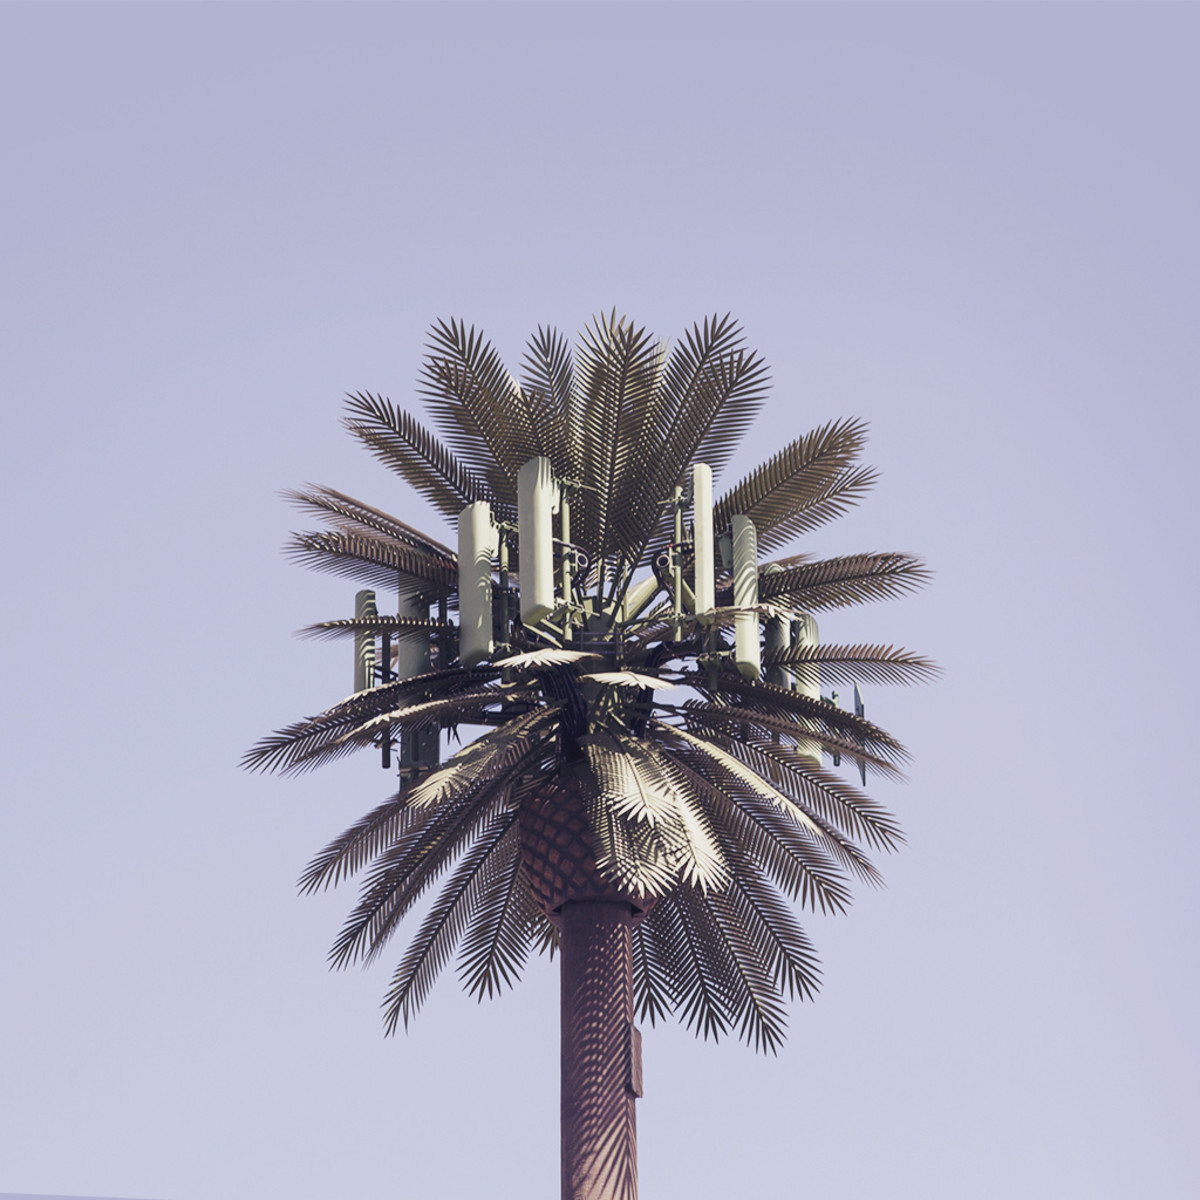 This is totally a palm tree. (Photo: Corey Holms/Flickr)